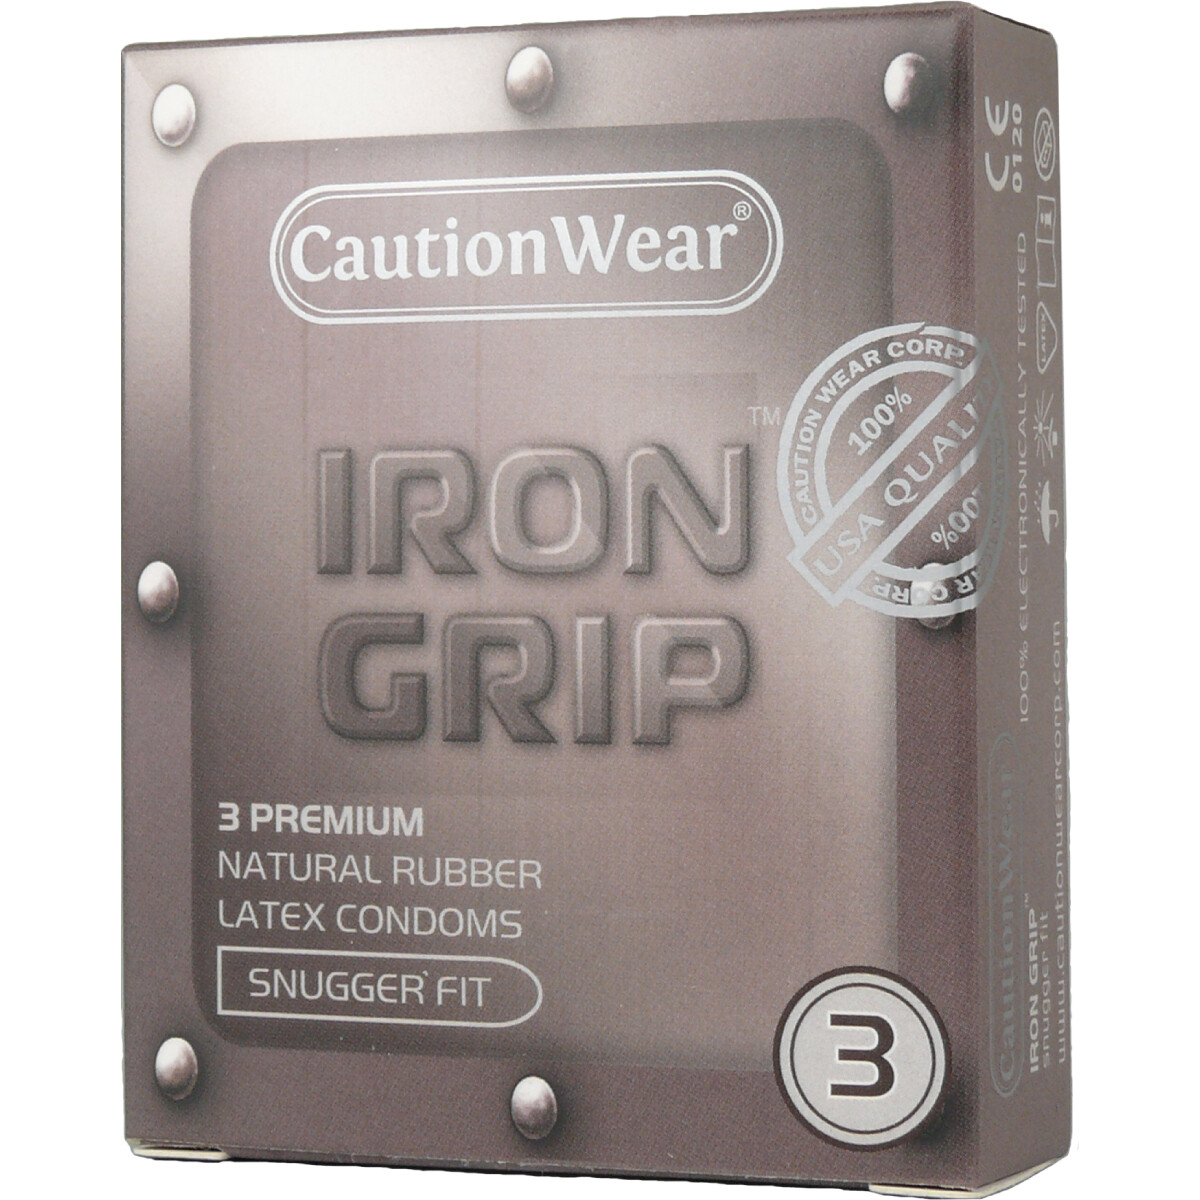 Iron Grip Snugger Fit